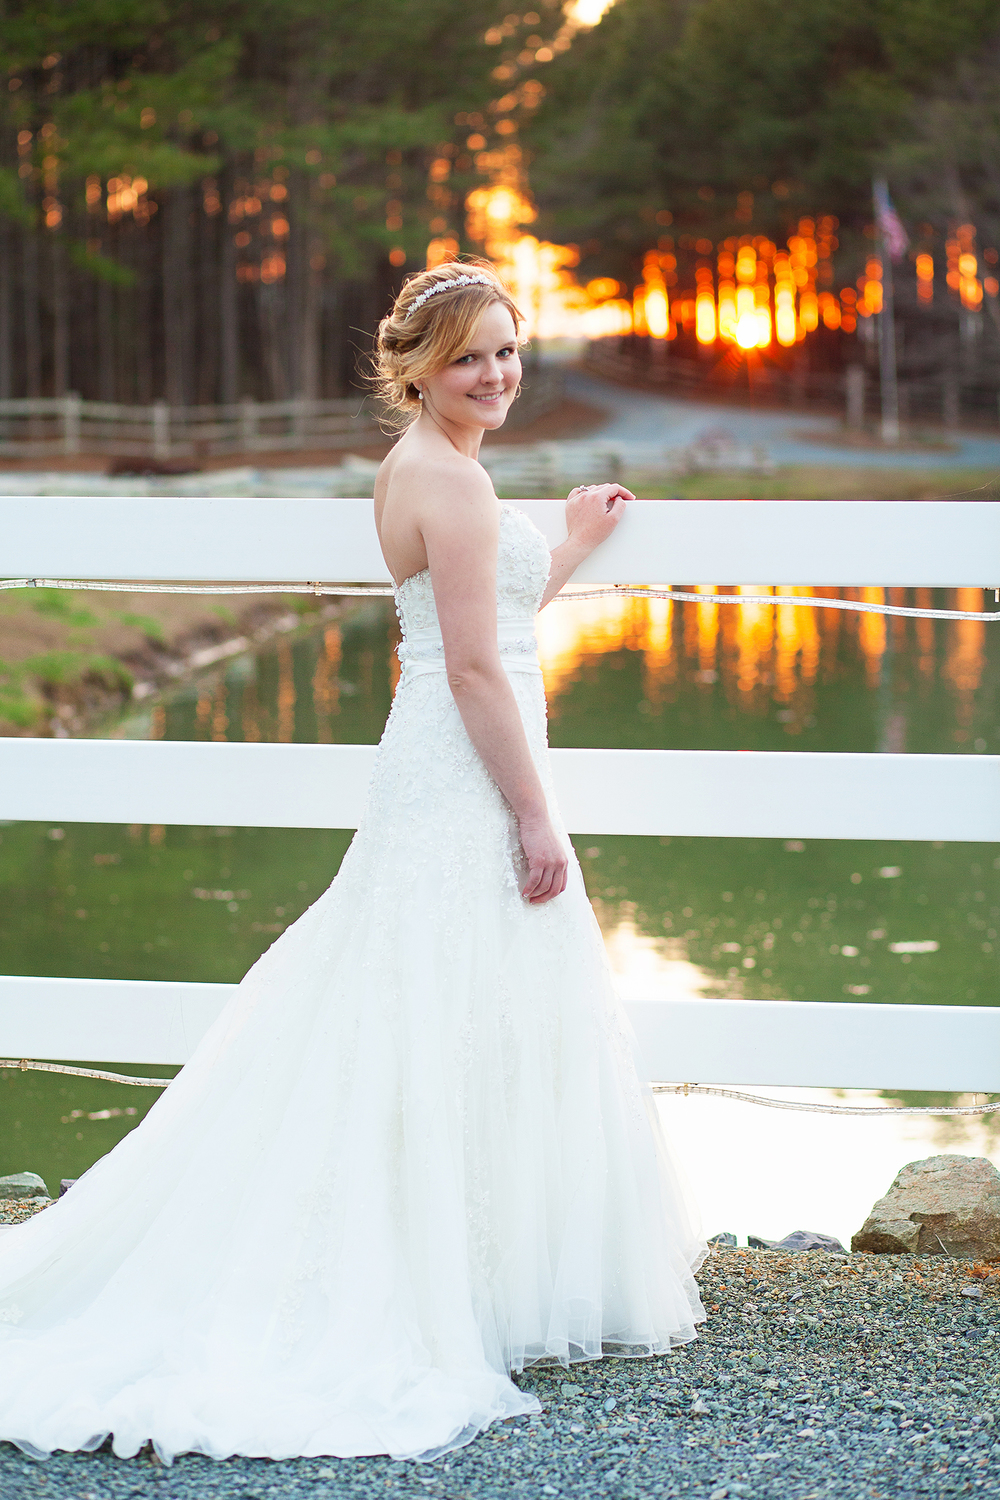 Sunset Bridal Portraits